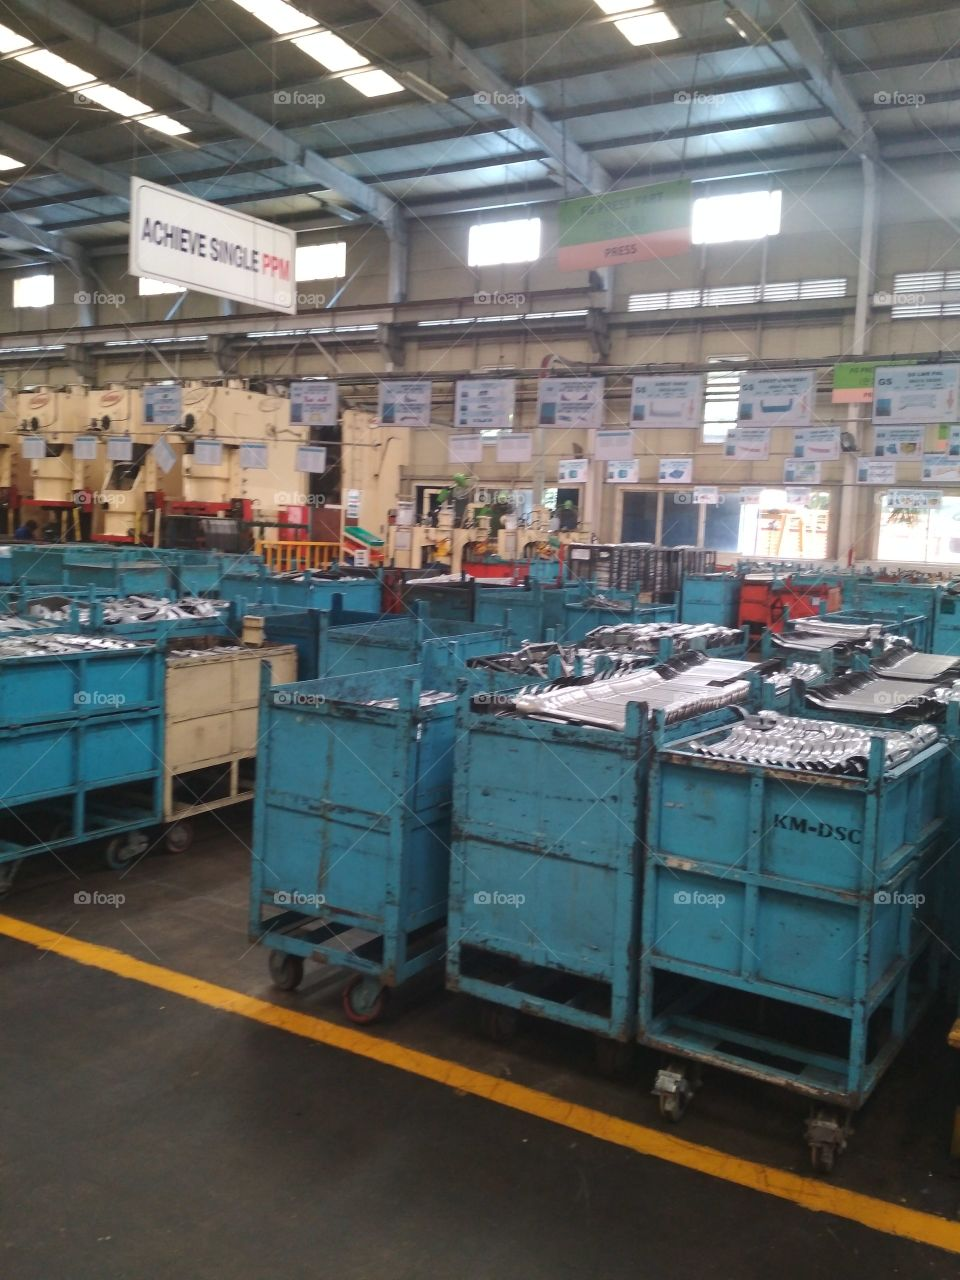 Grinder, Industry, Container, Warehouse, Commerce